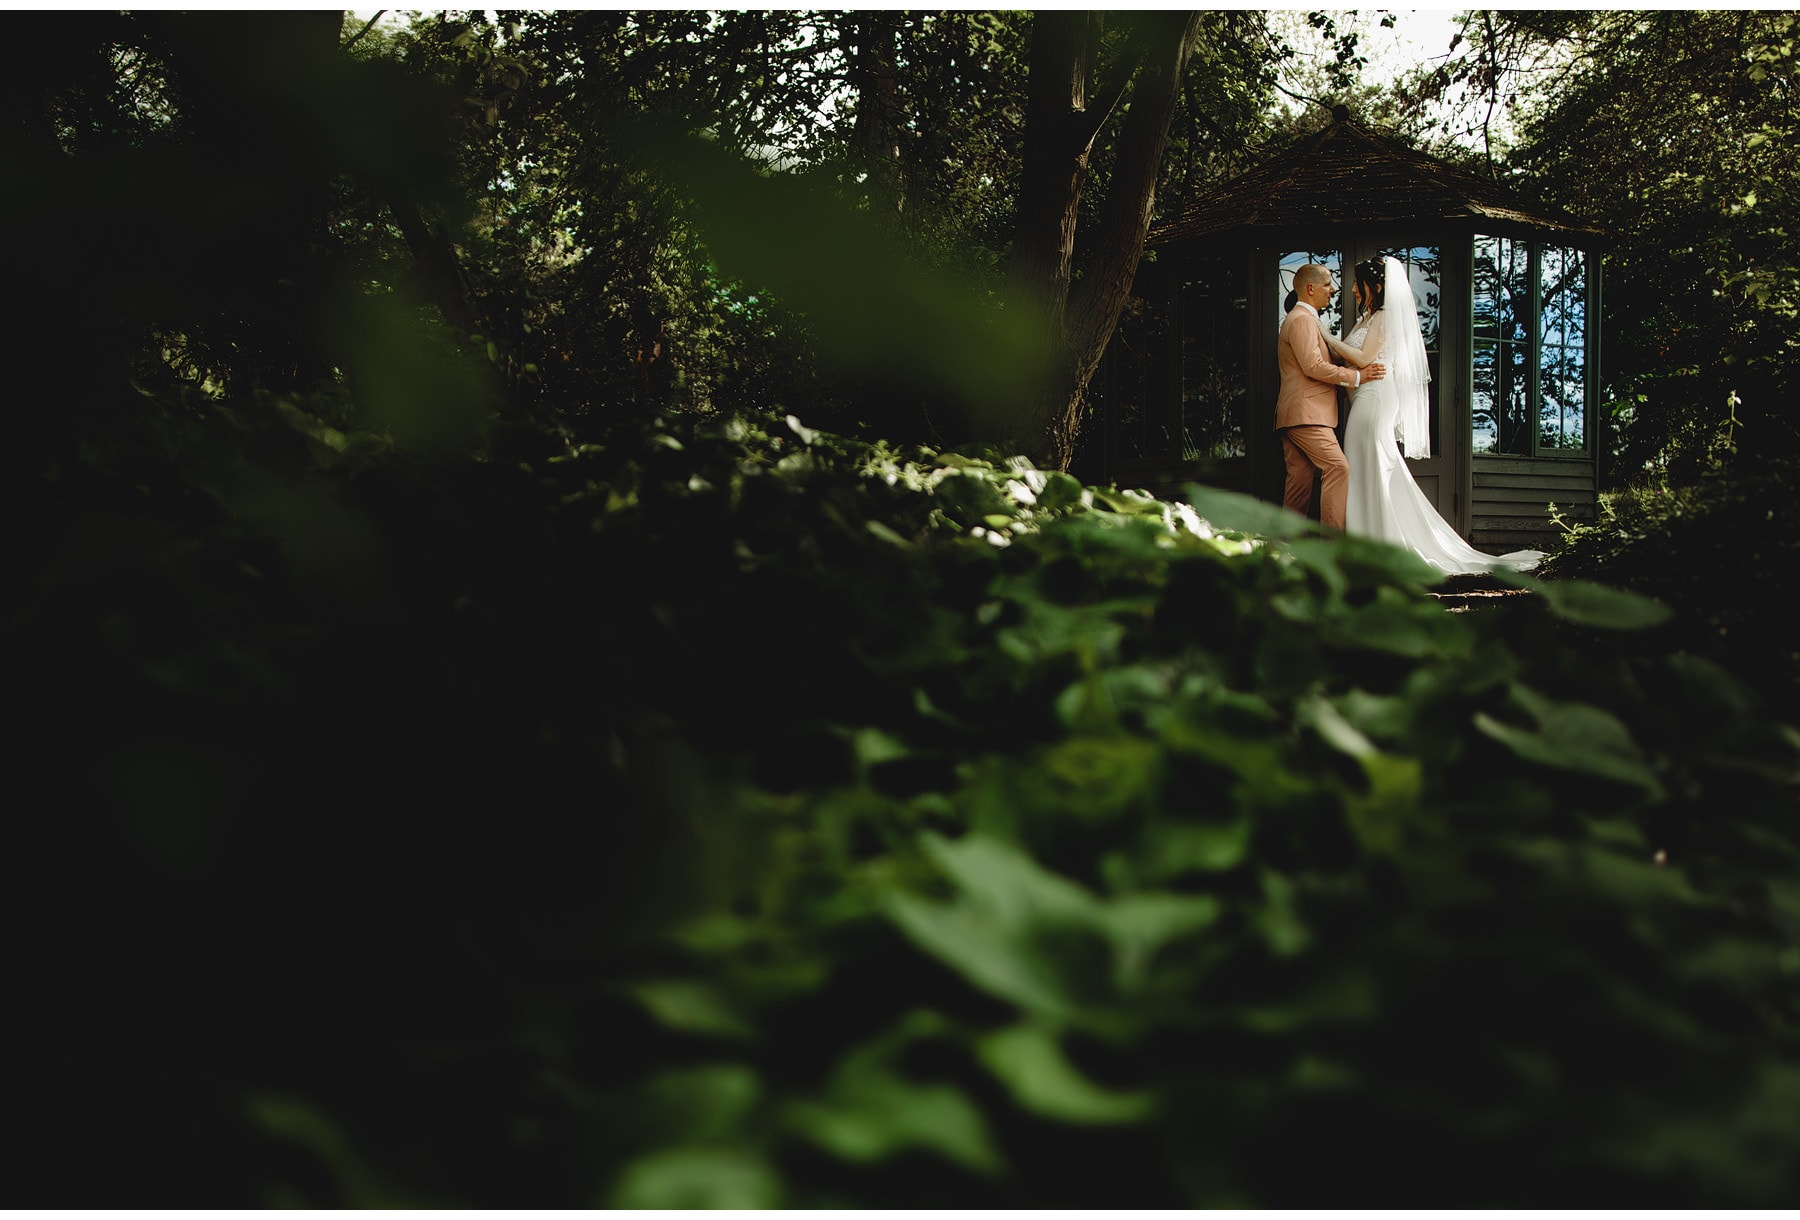 the bride & groom in the grounds of Hothorpe Hall after their wedding